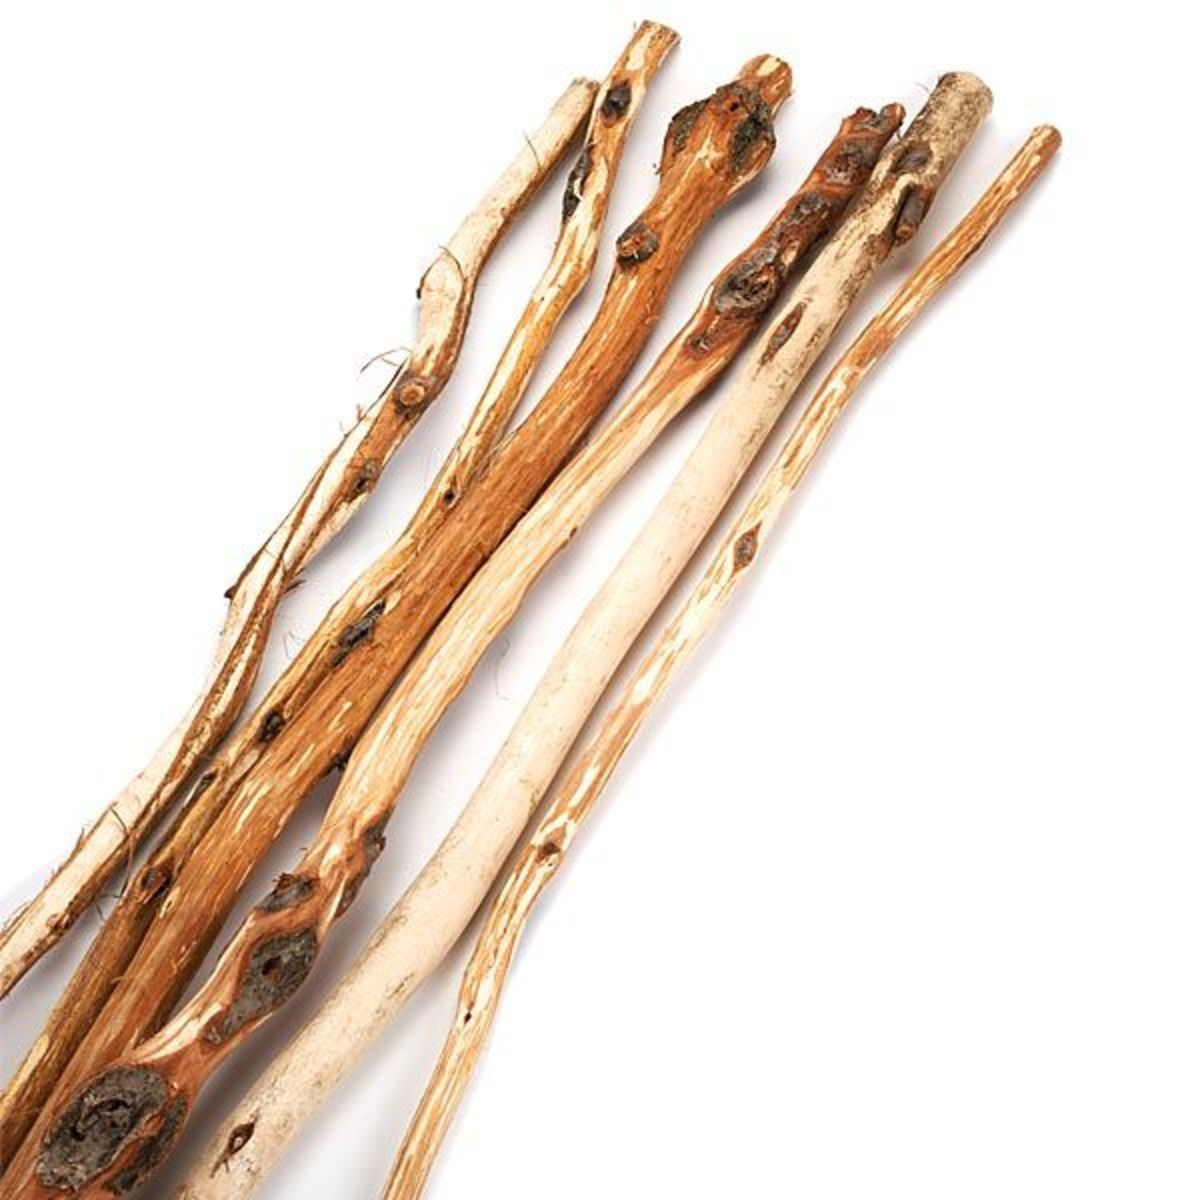 Traditional walking stick blanks